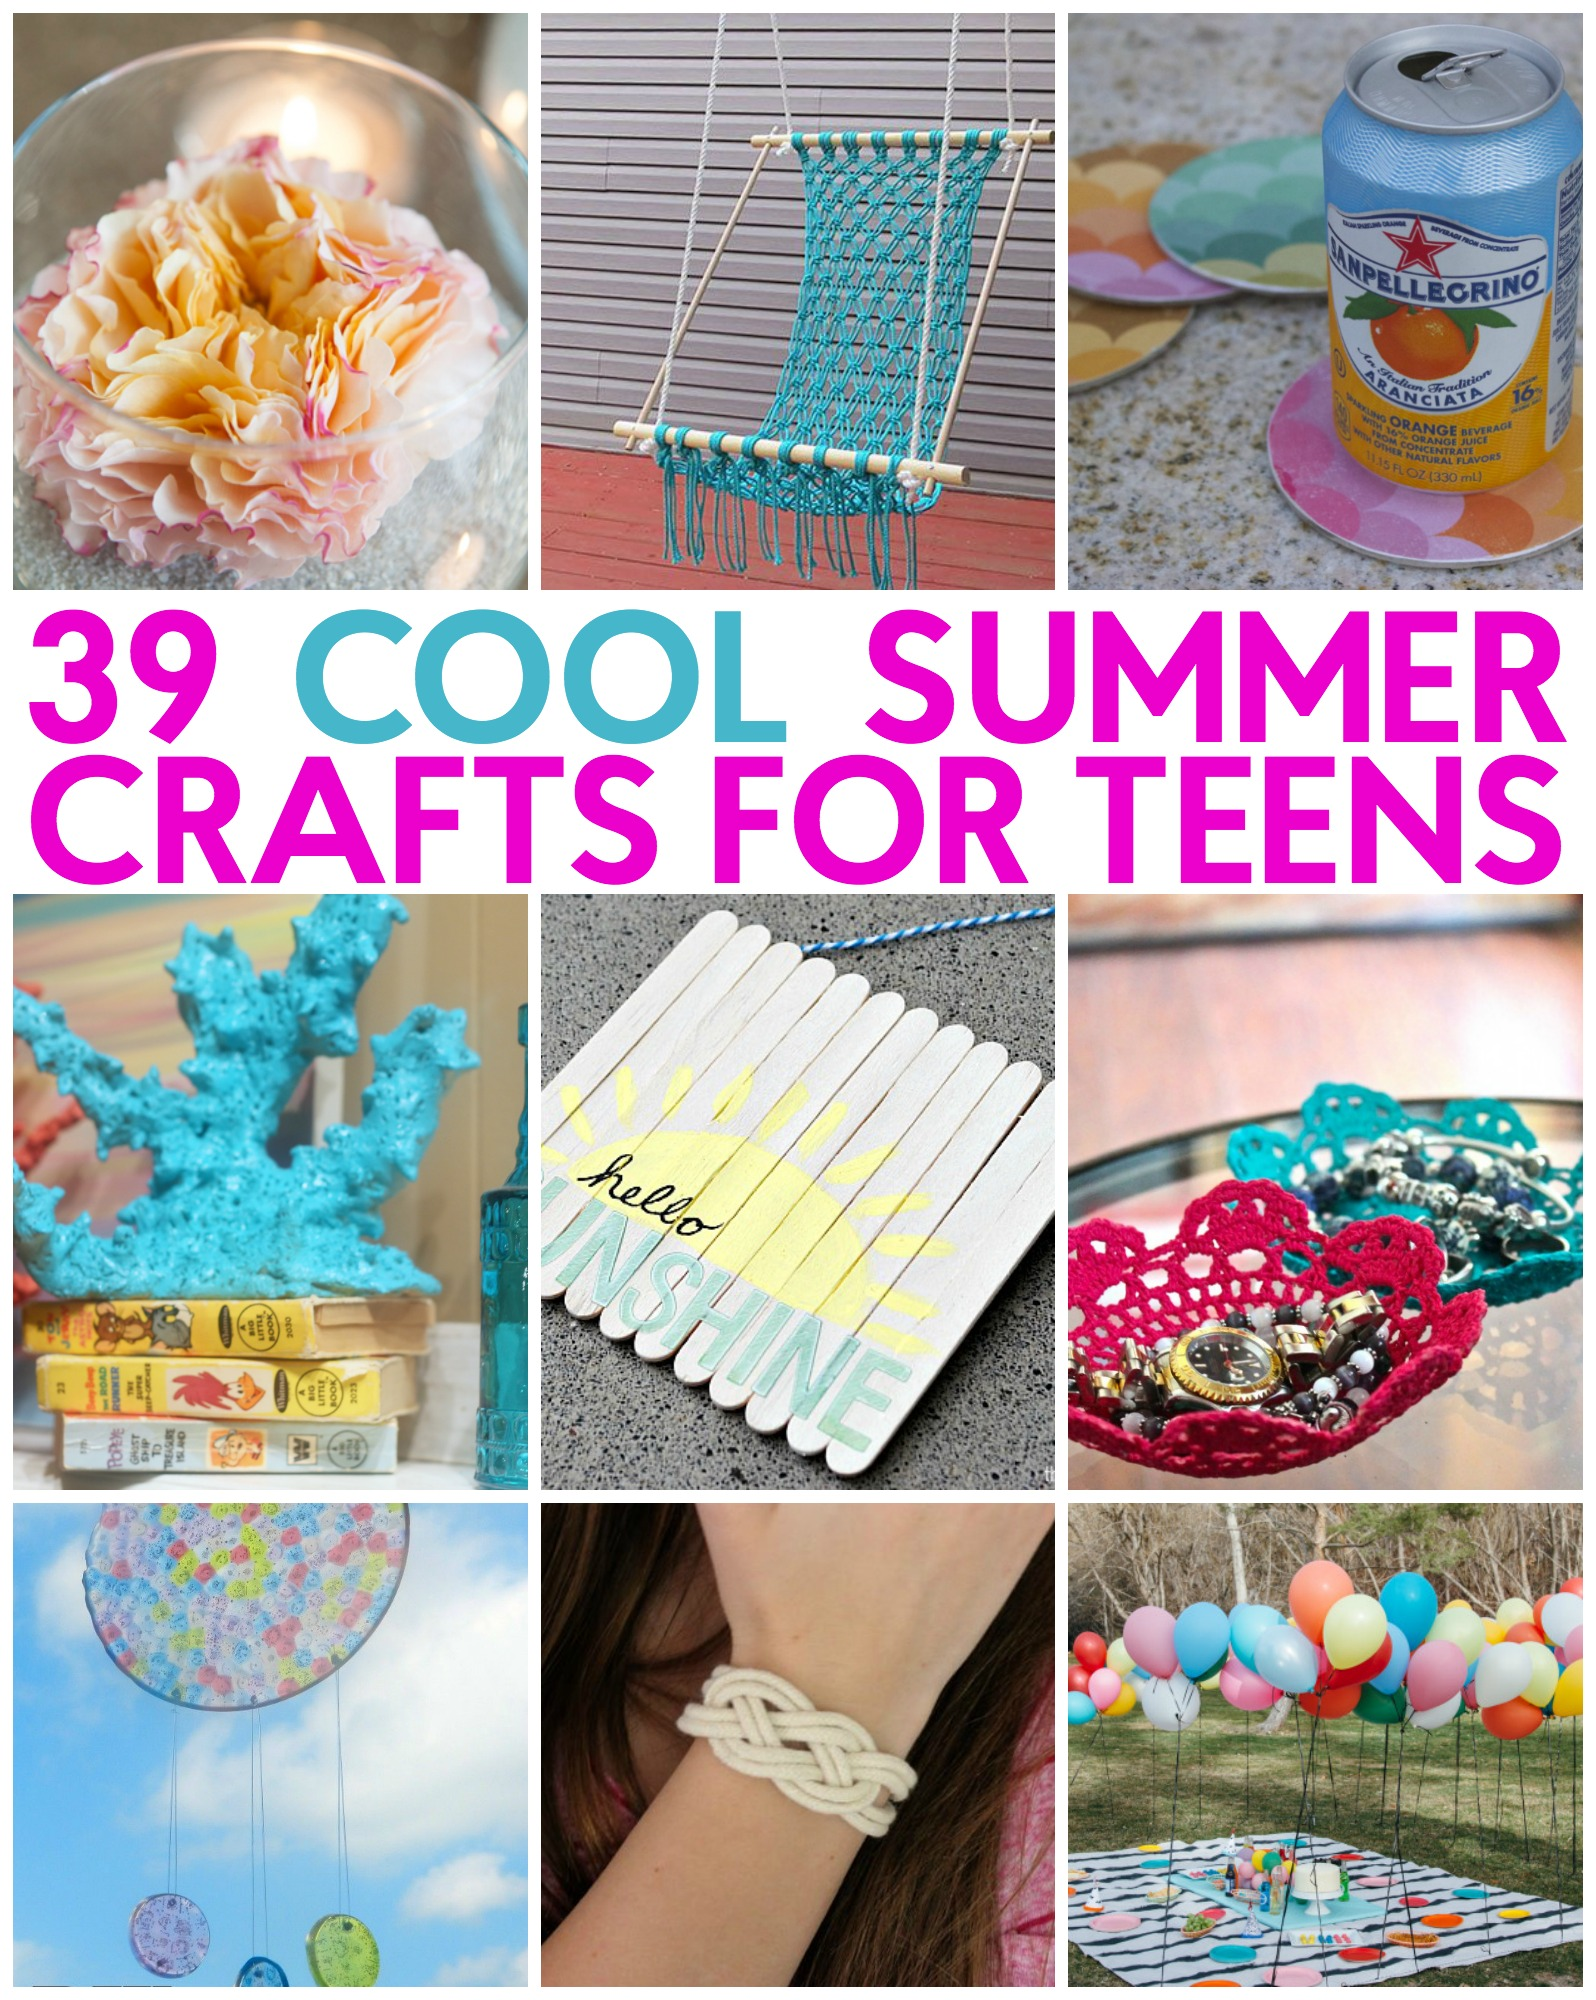 39 Great Teen Summer Crafts